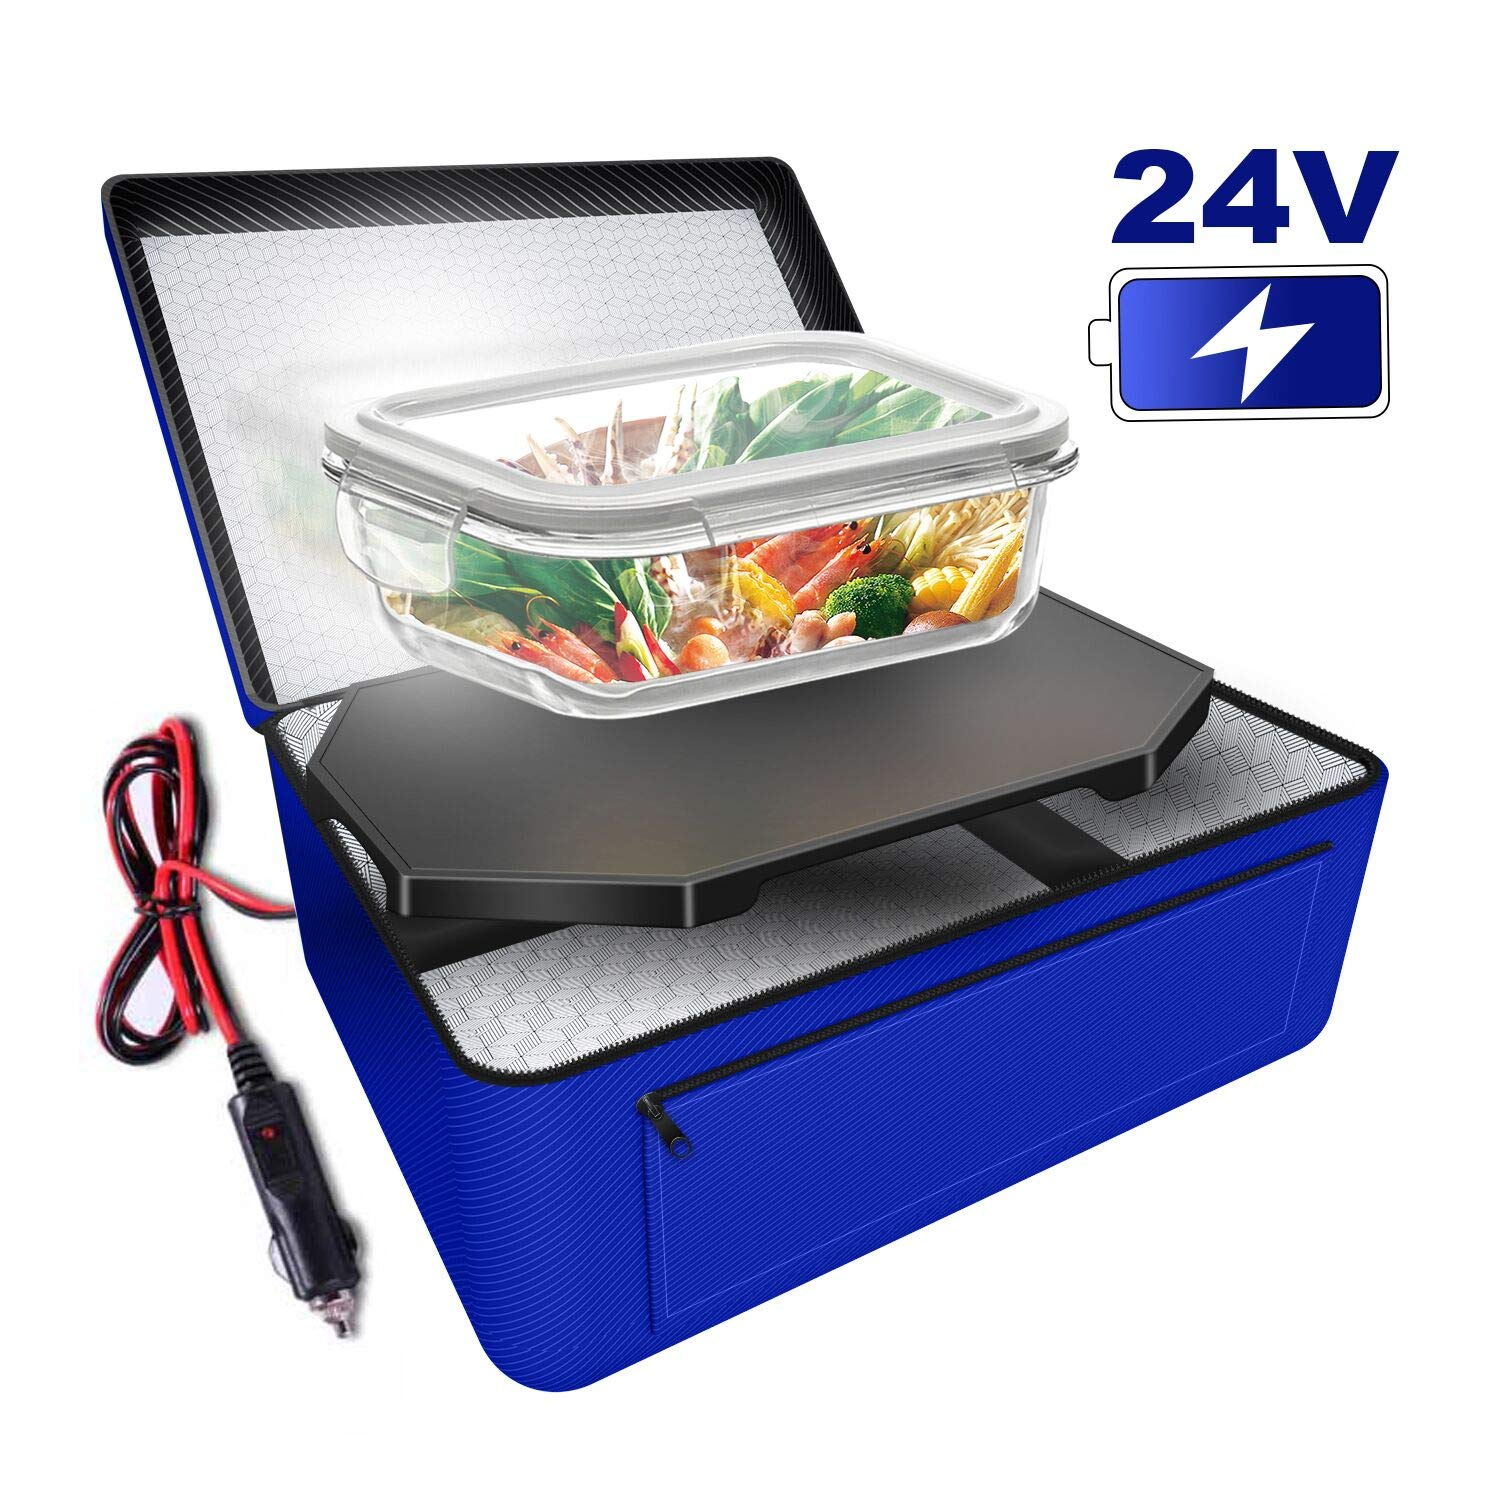 Triangle Power Personal Portable Oven, Electric Slow Cooker For Food,Mini Oven For Meals Reheat,Food Warmer with Lunch Bag For Car(24V) by Triangle Power